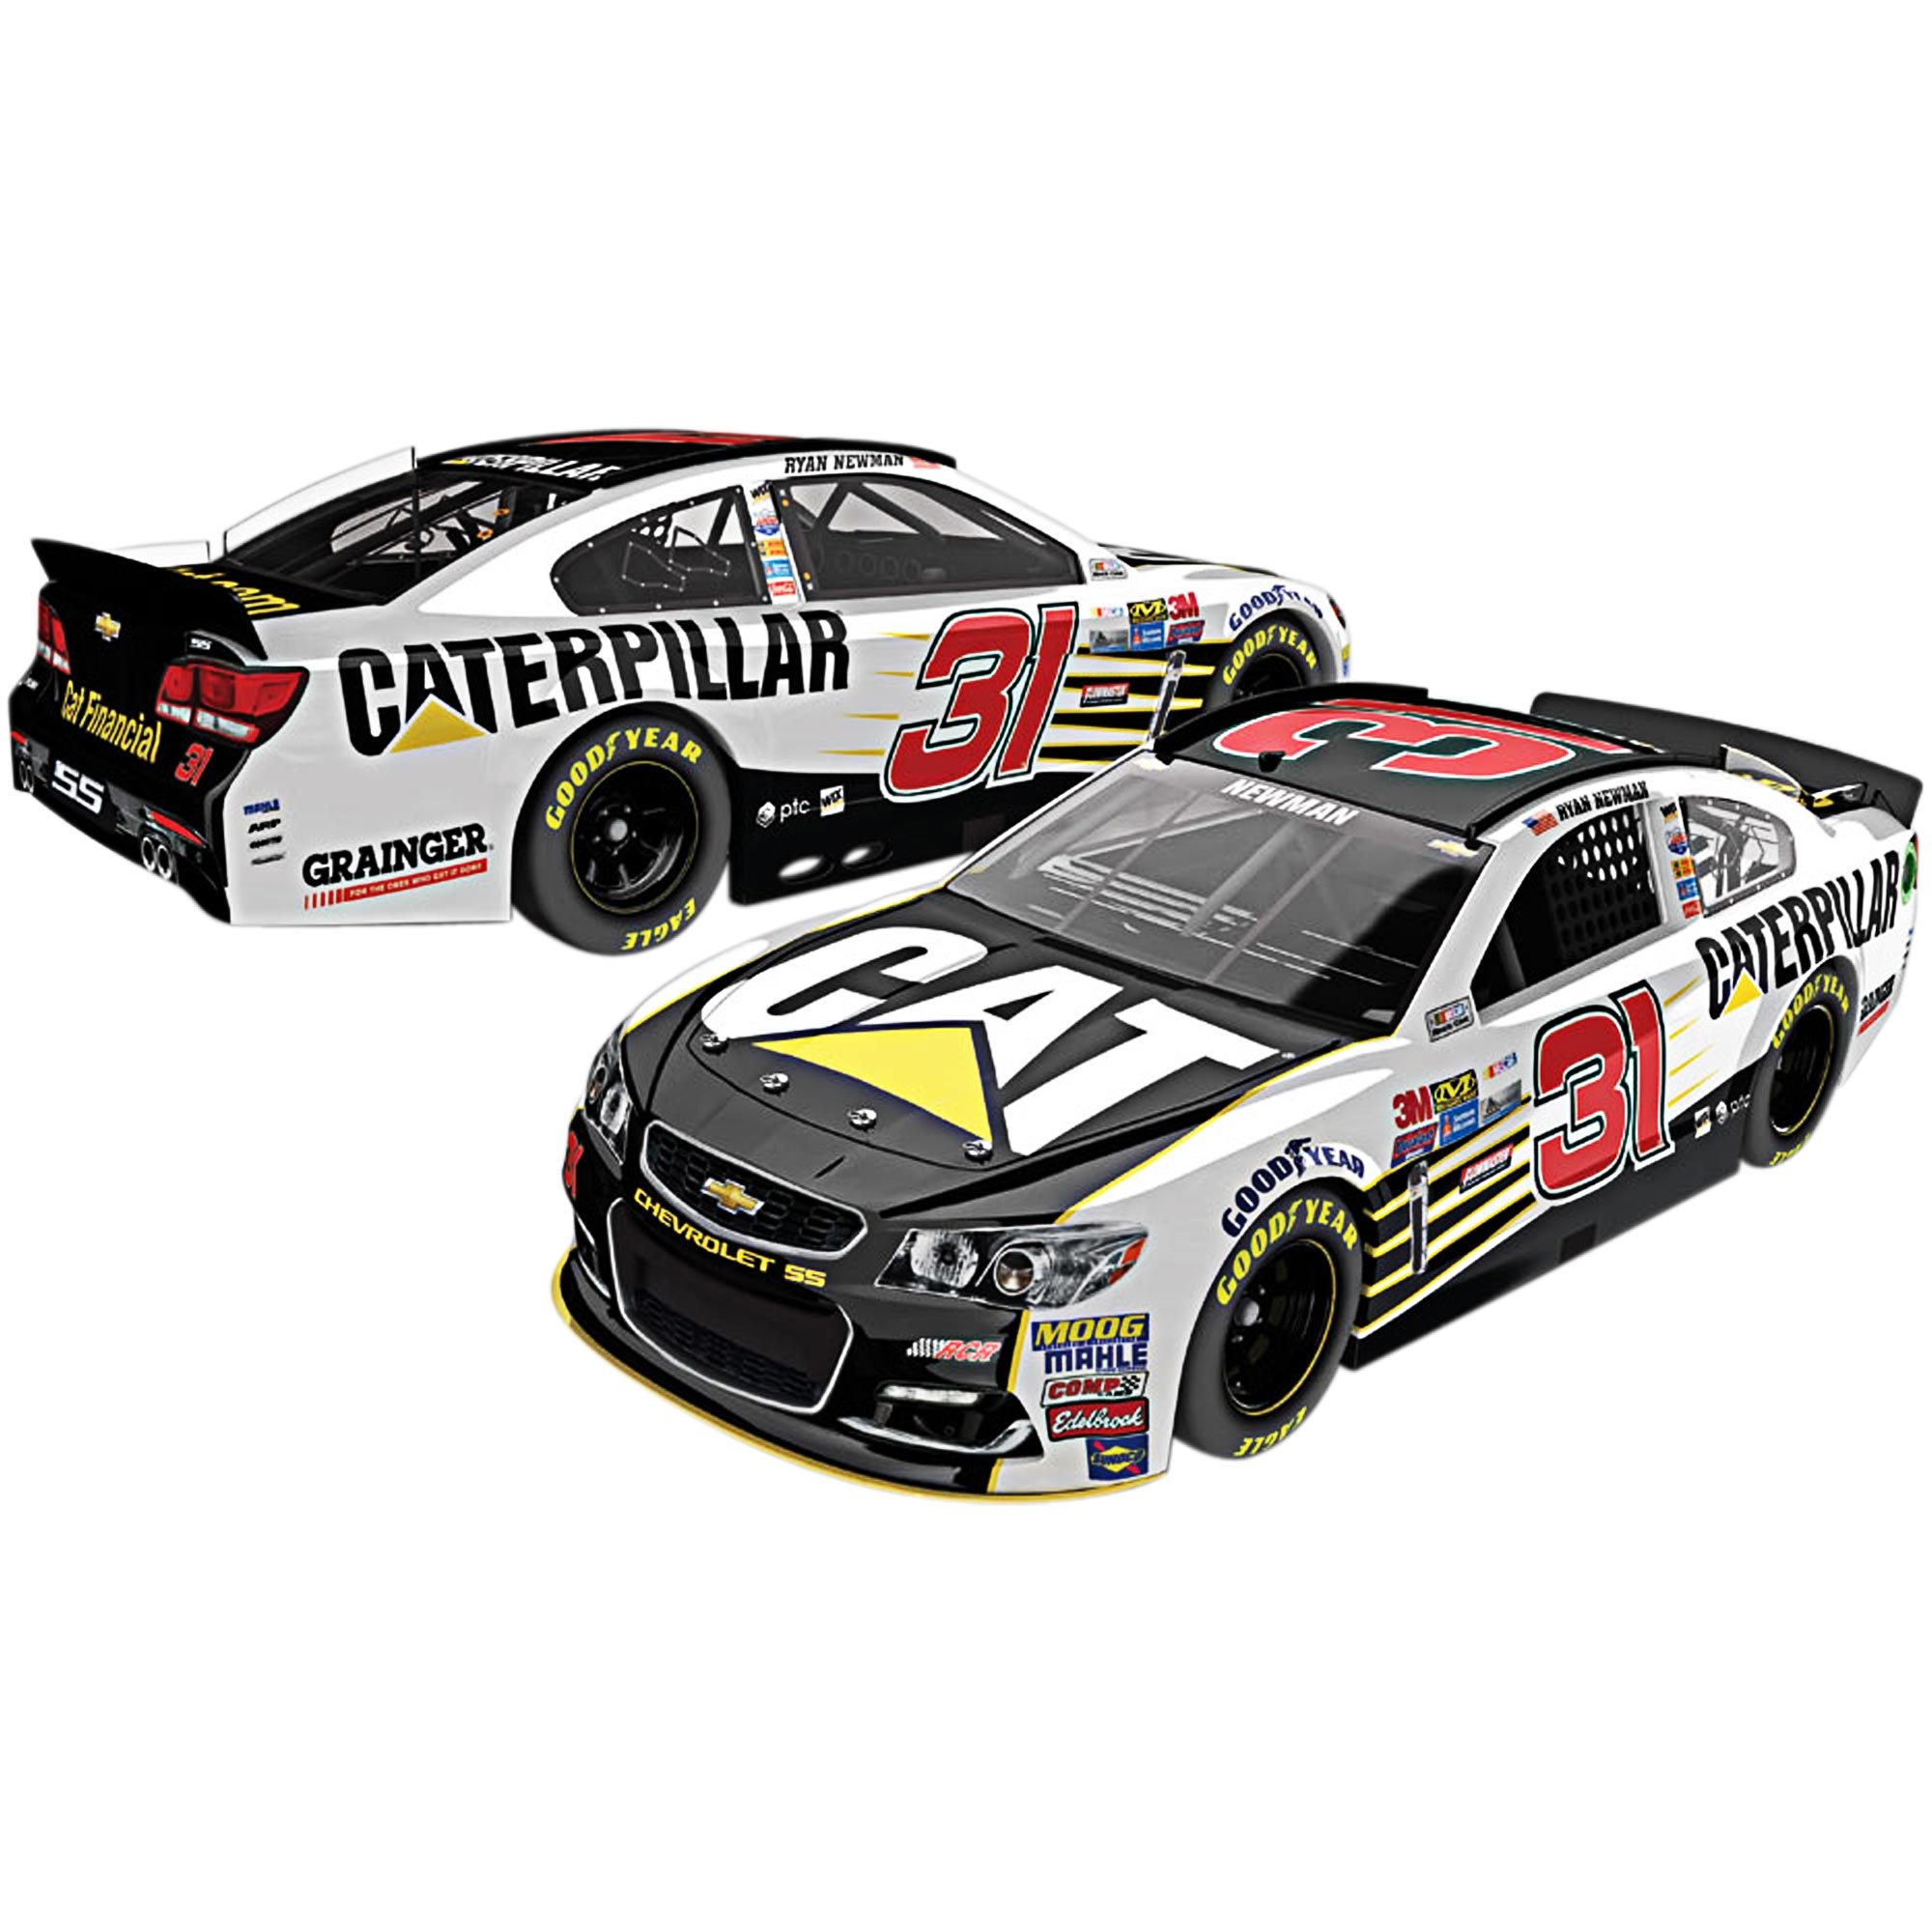 Lionel Racing Ryan Newman #31 Caterpillar 2017 Chevrolet SS 1:64th Scale Hard-Top Die-cast